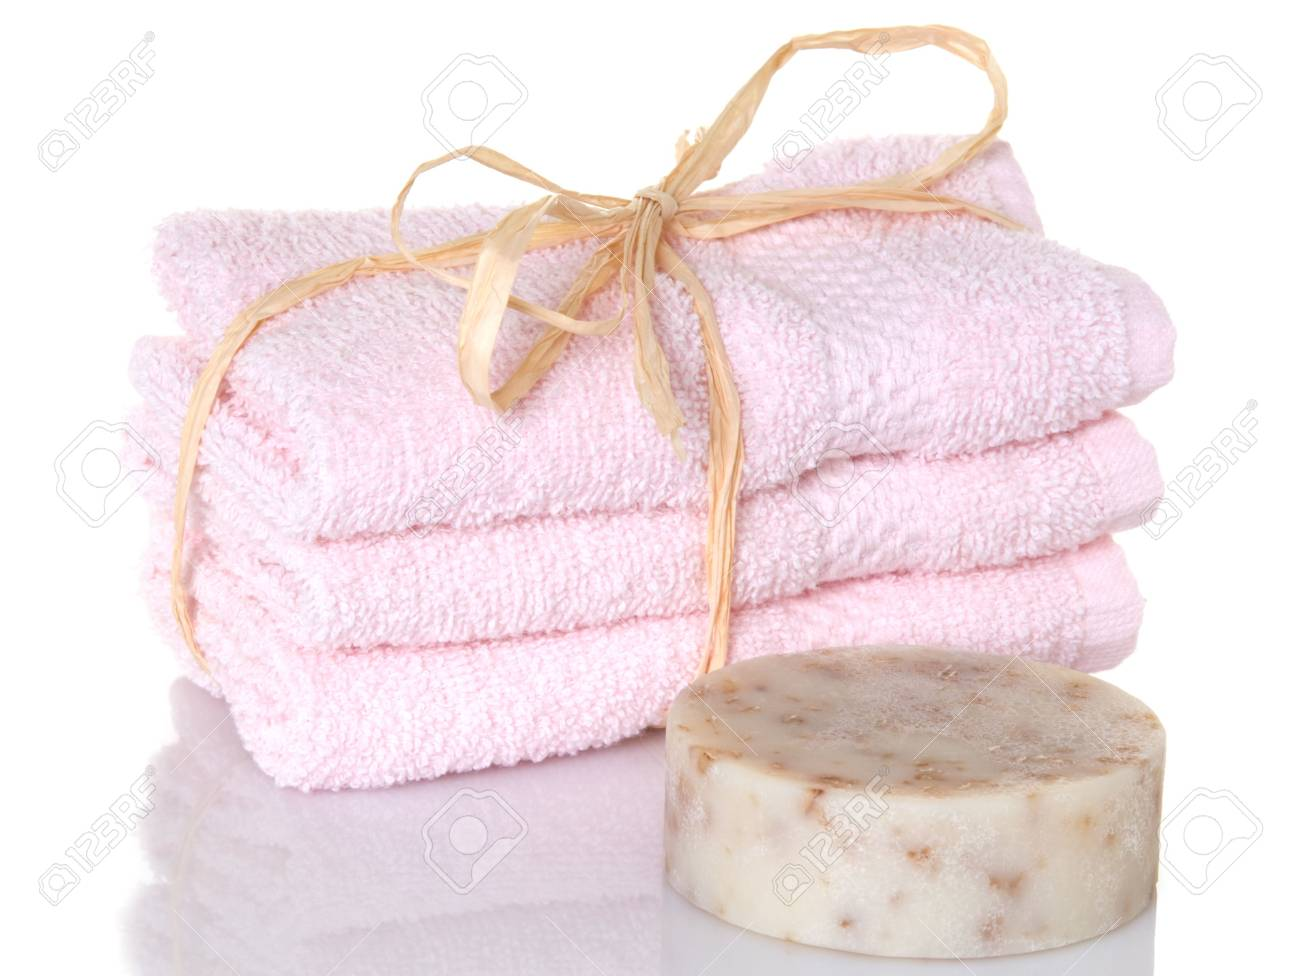 Pink towelettes with a bar of oatmeal soap - 5444949